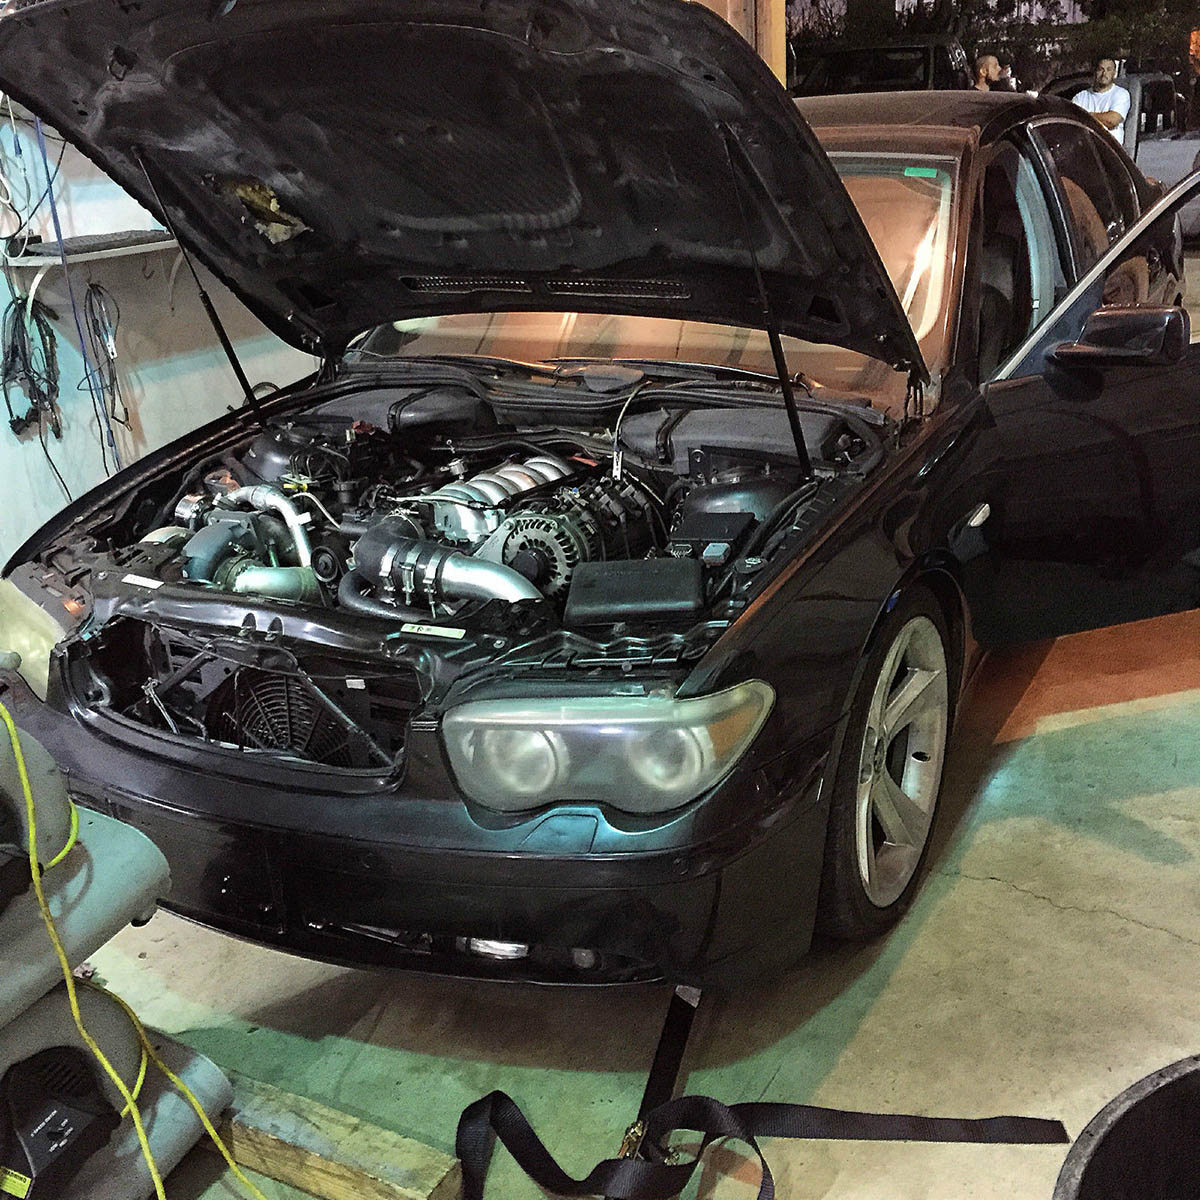 2002 BMW 745 With A Turbo Chevy V8 07